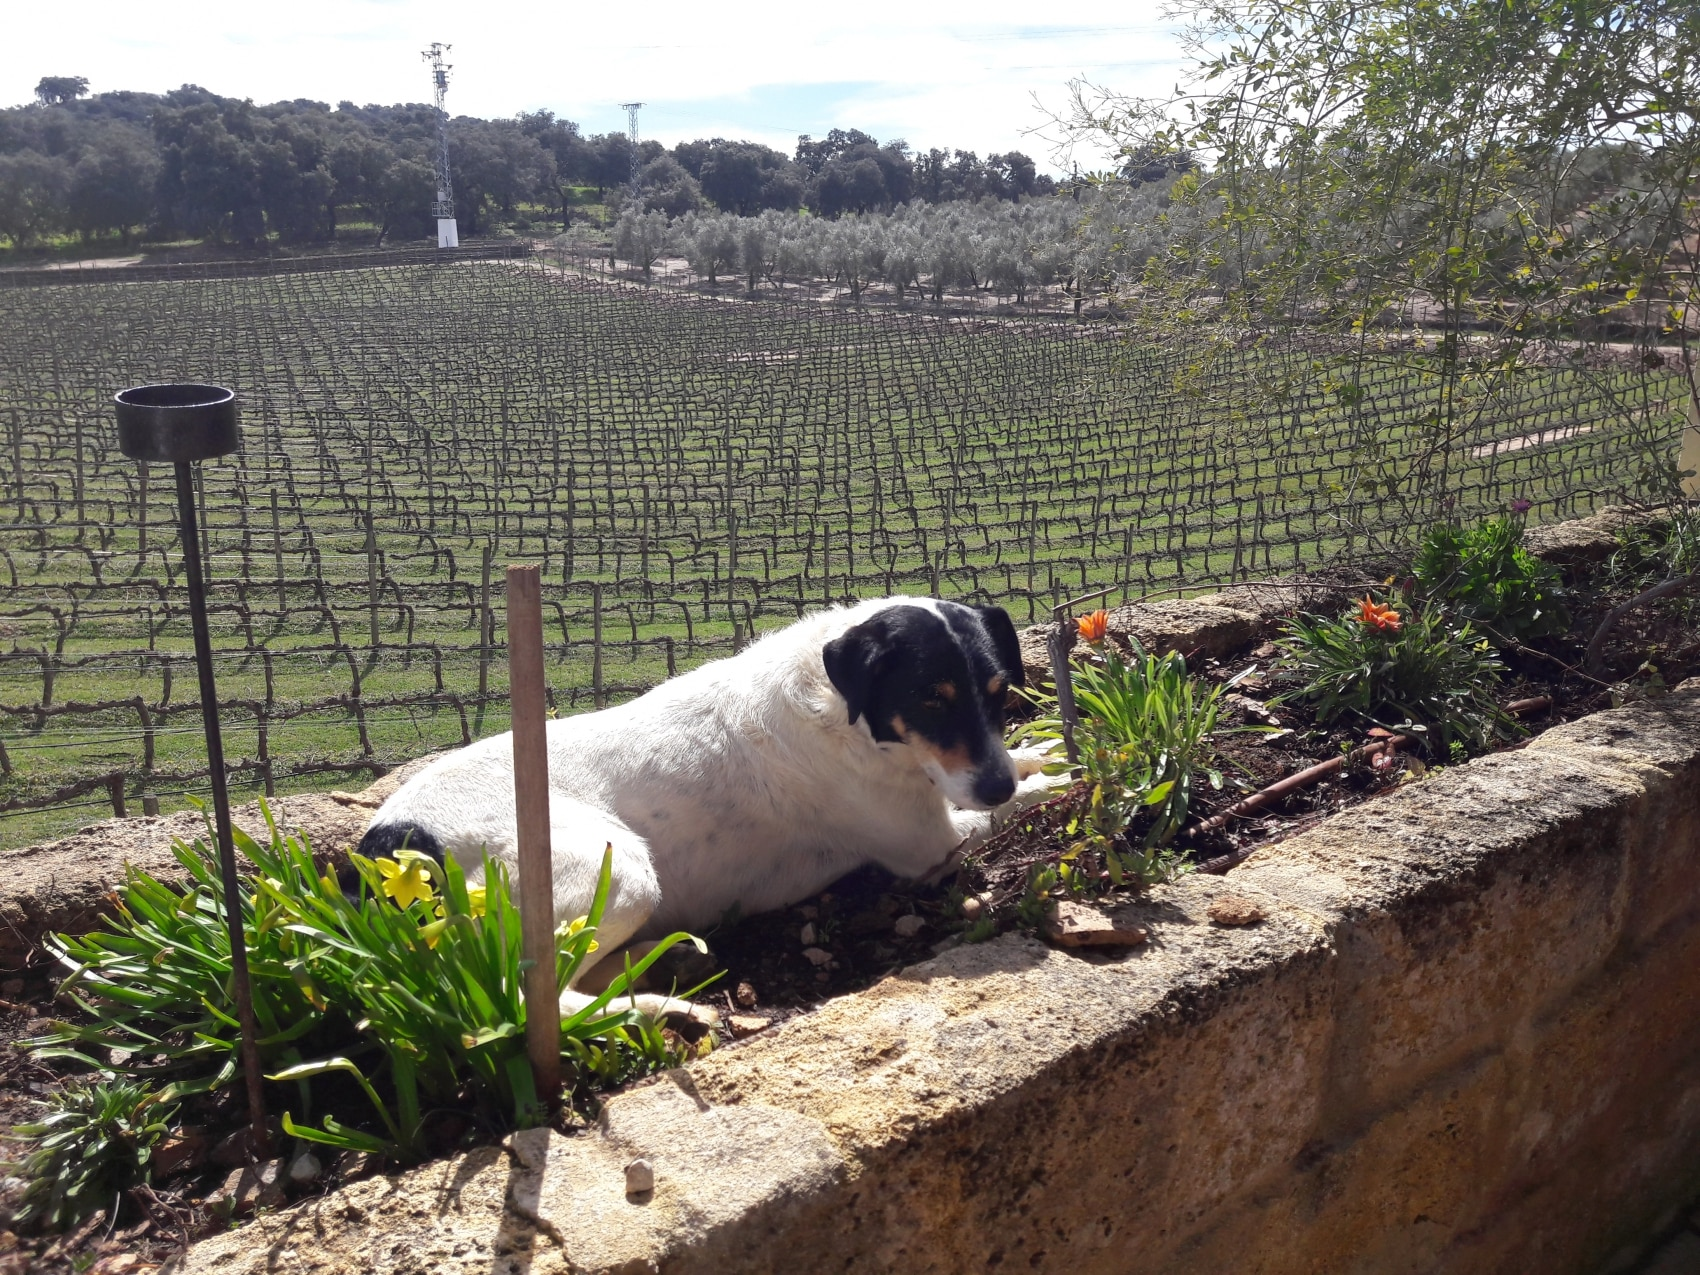 vineyard in Ronda Spain with dog in the foreground